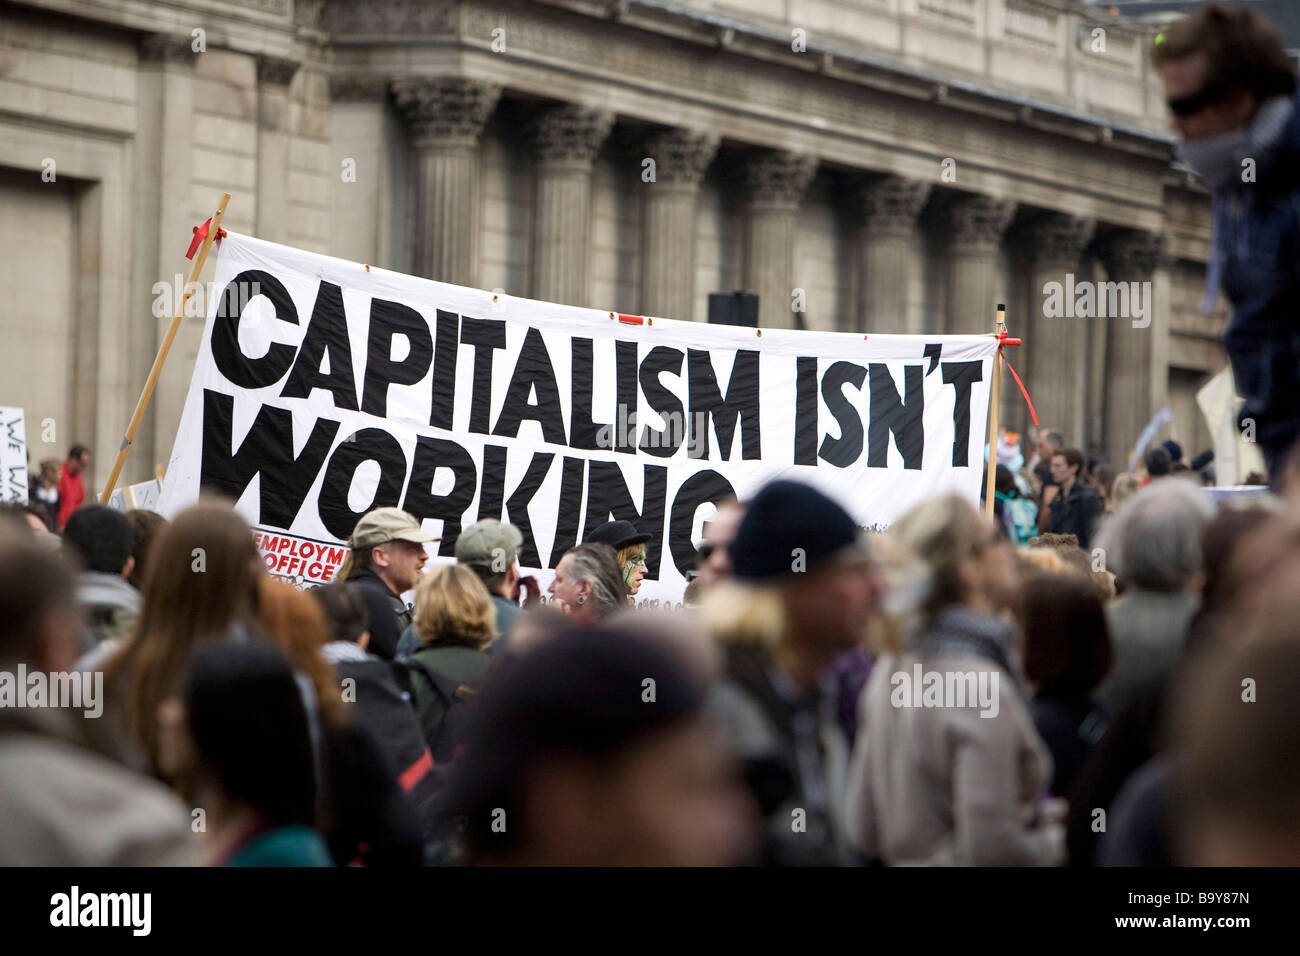 G20 meltdown protest outside the Bank of England - Stock Image